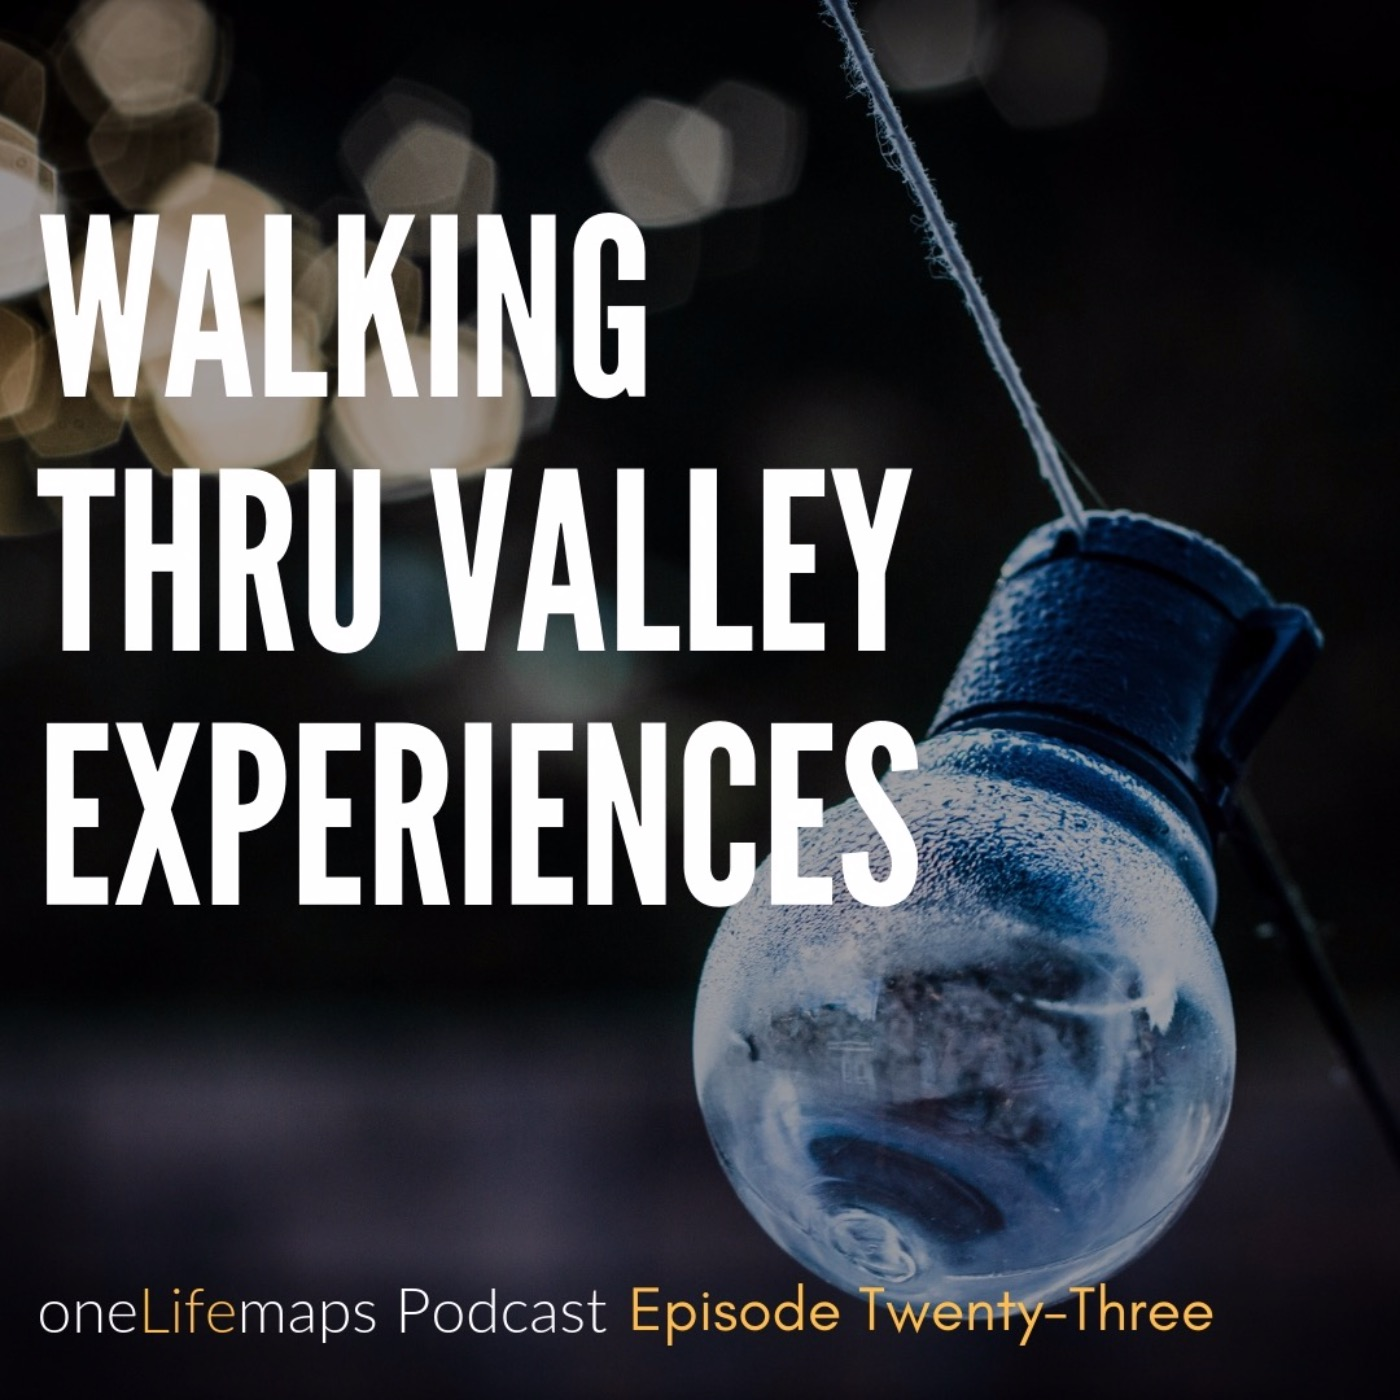 Walking Thru Valley Experiences